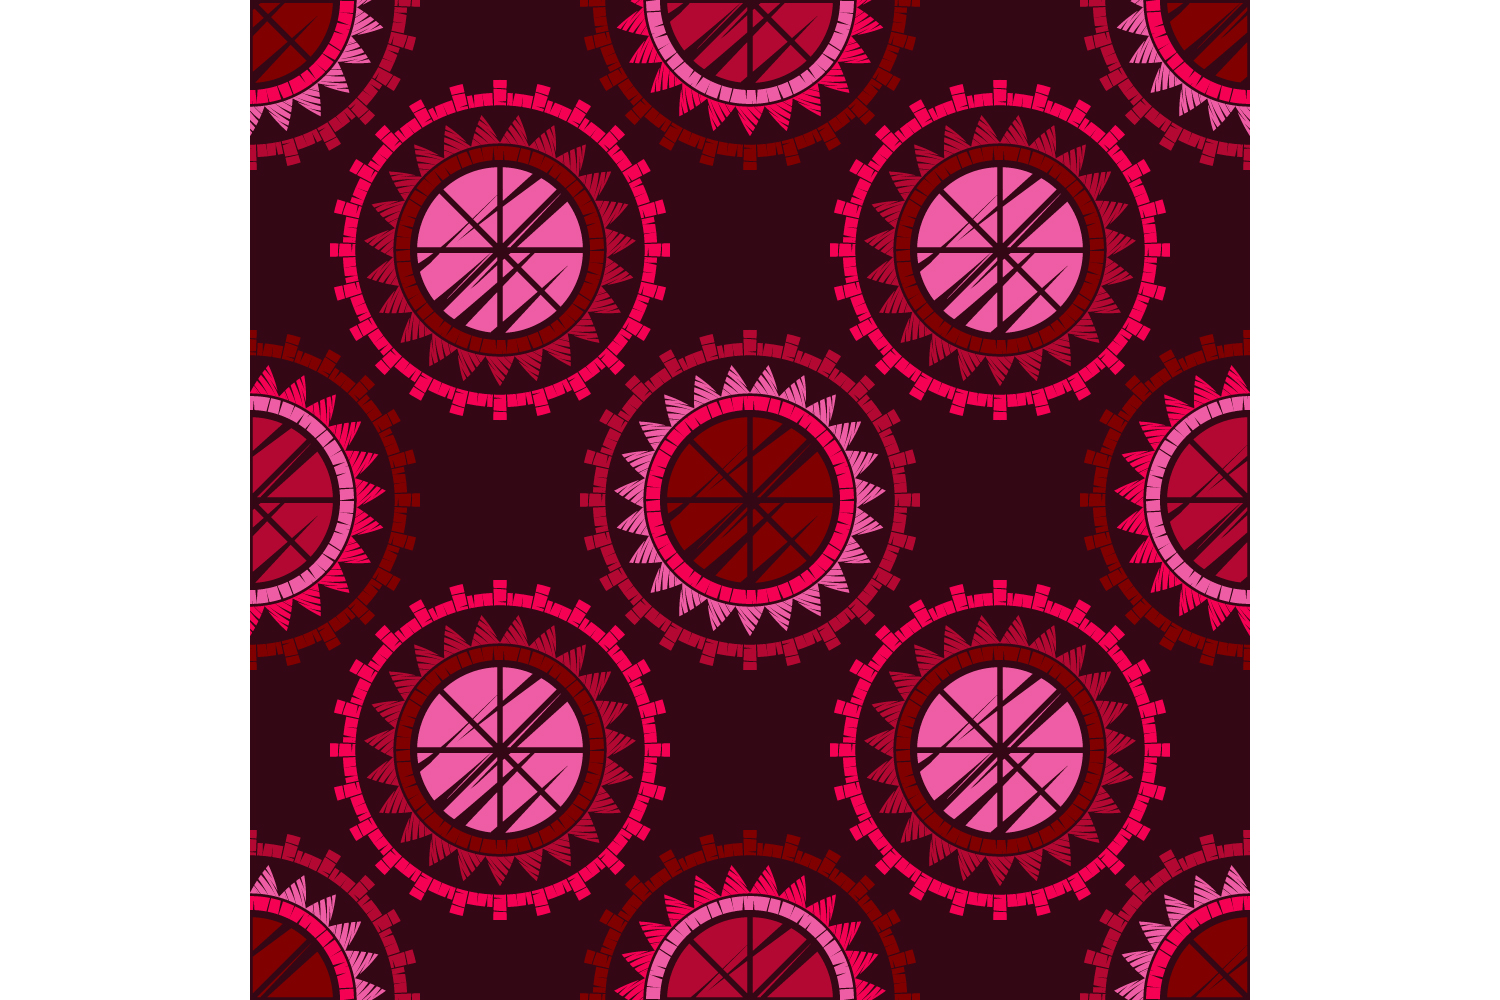 Polka dot ethnic ornament. Set of 10 seamless patterns. example image 2